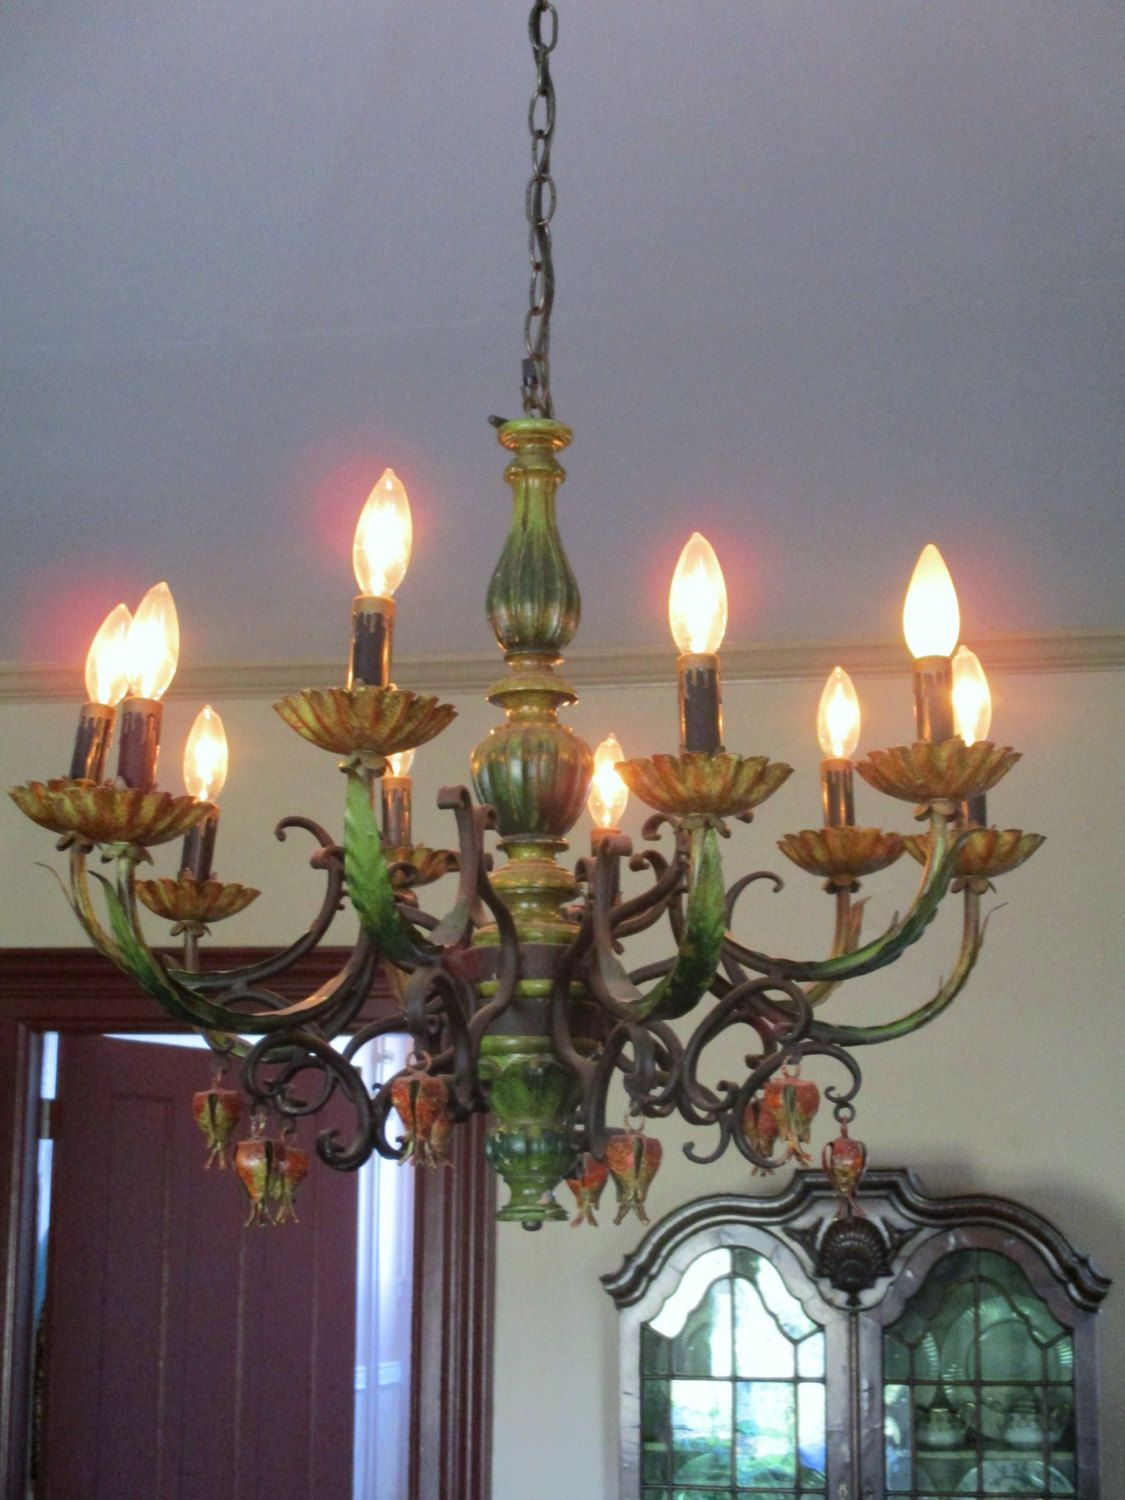 Vintage Italian Tole Chandelier Huge 10 Arm Light Retro Colors Farmhouse Chic by SimplyCottageChic on Etsy